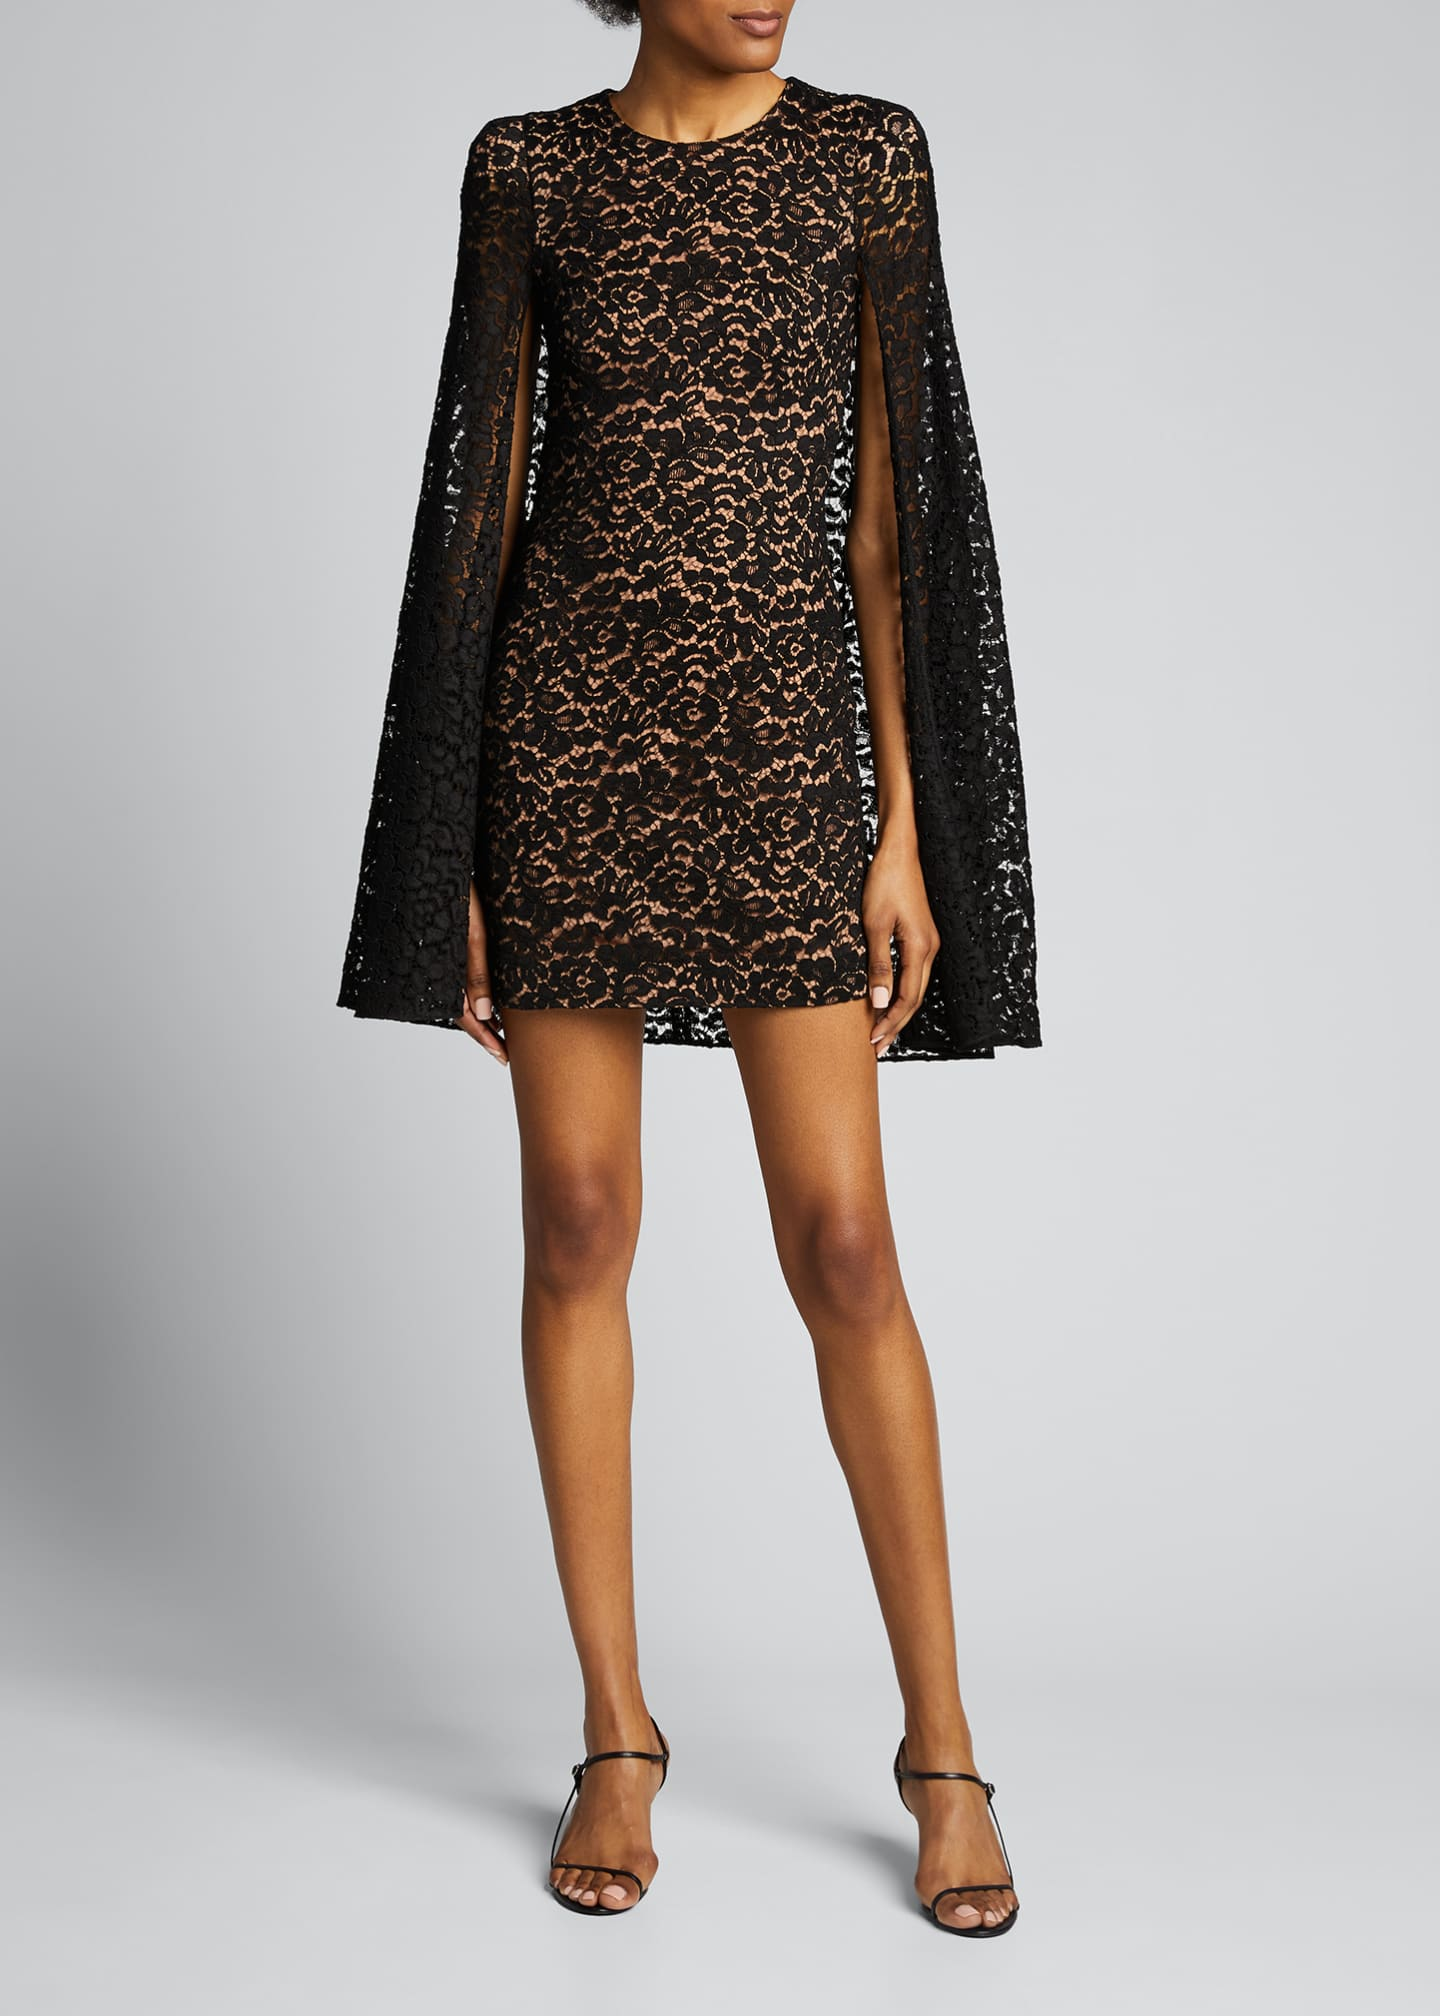 Image 3 of 5: Floral Lace Cape Dress